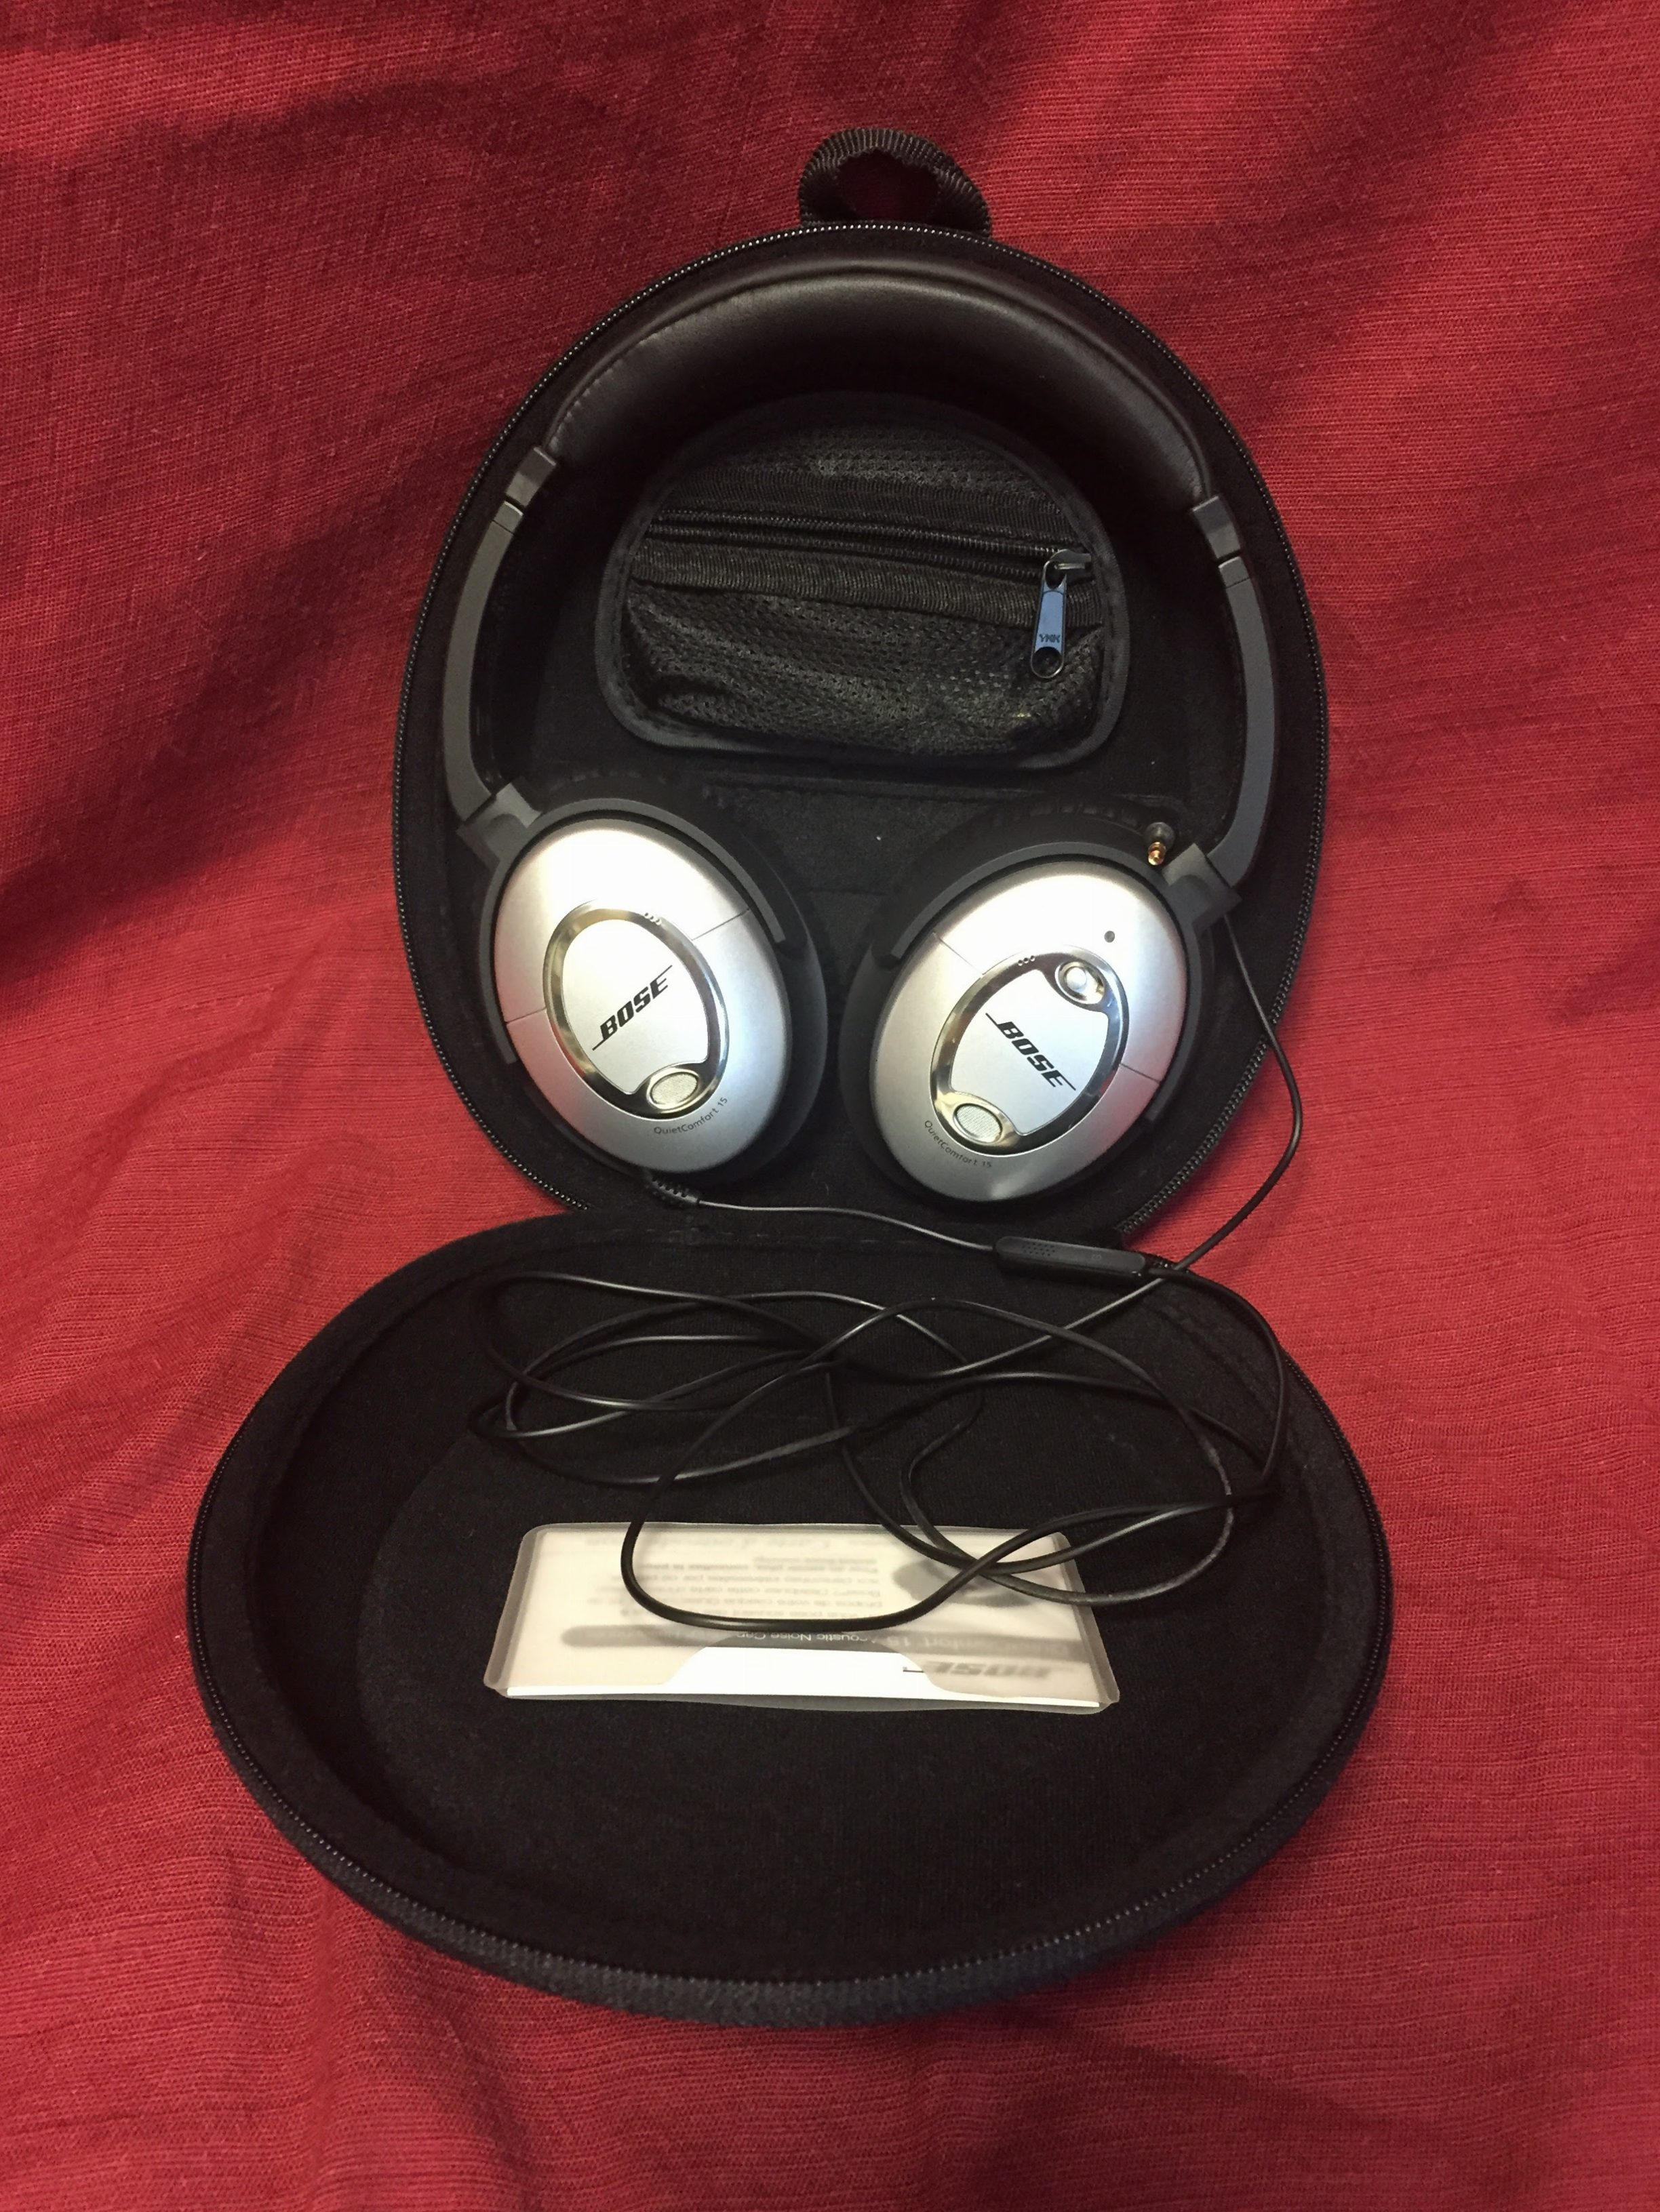 boseheadphones comfort headphones cancelling comforter bose acoustic quietcomfort quiet headphonesbose pin edition limited noise